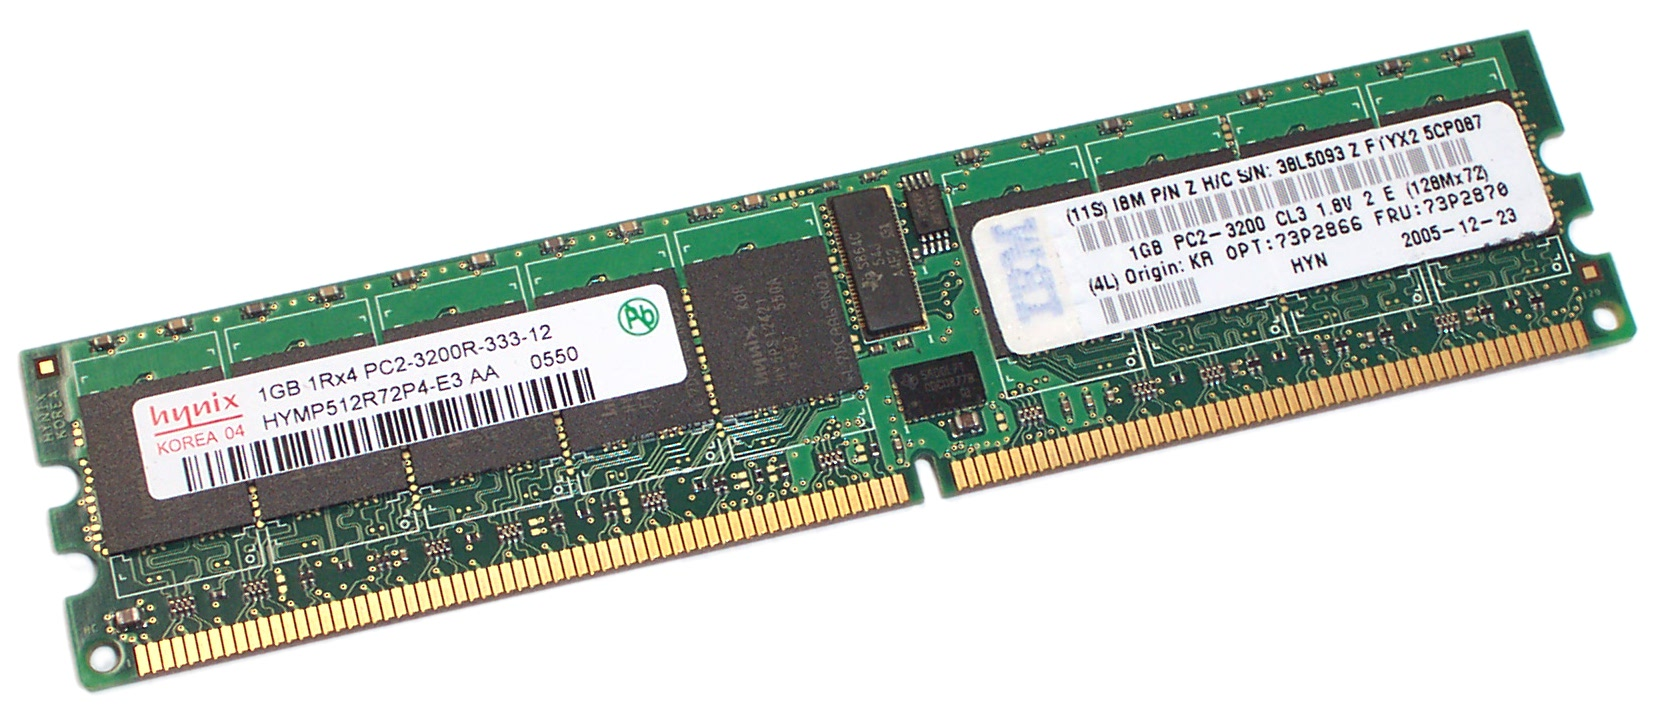 IBM 73P2870 Hynix HYMP512R72P4-E3-AA 1GB PC2-3200 CL3 ECC Registered DDR2 Memory